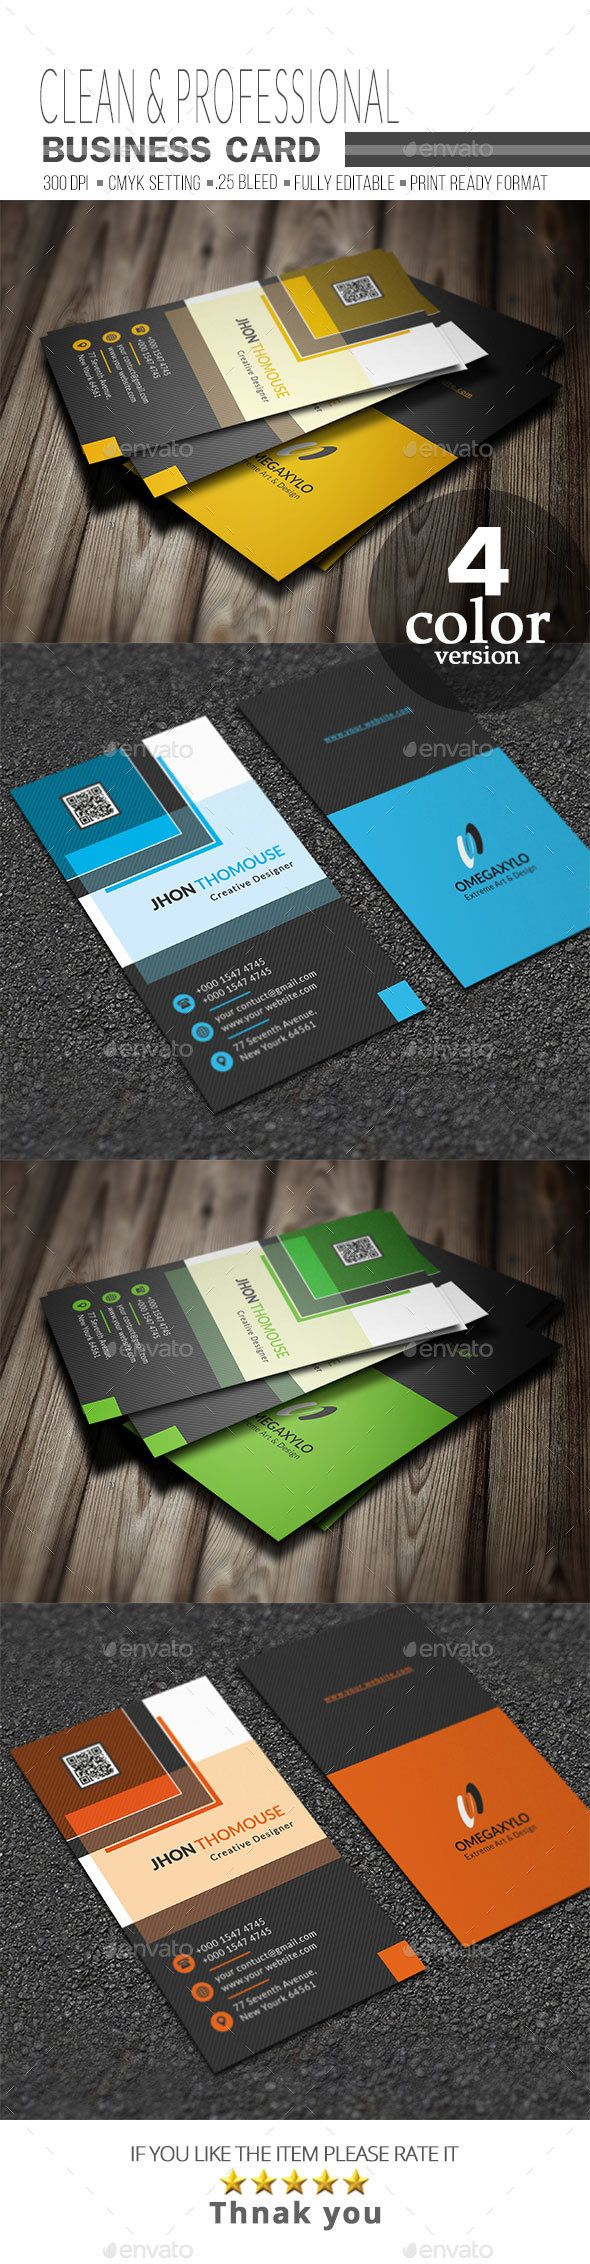 Best Business Card Templates Images On Pinterest Script Fonts - Buy business card template